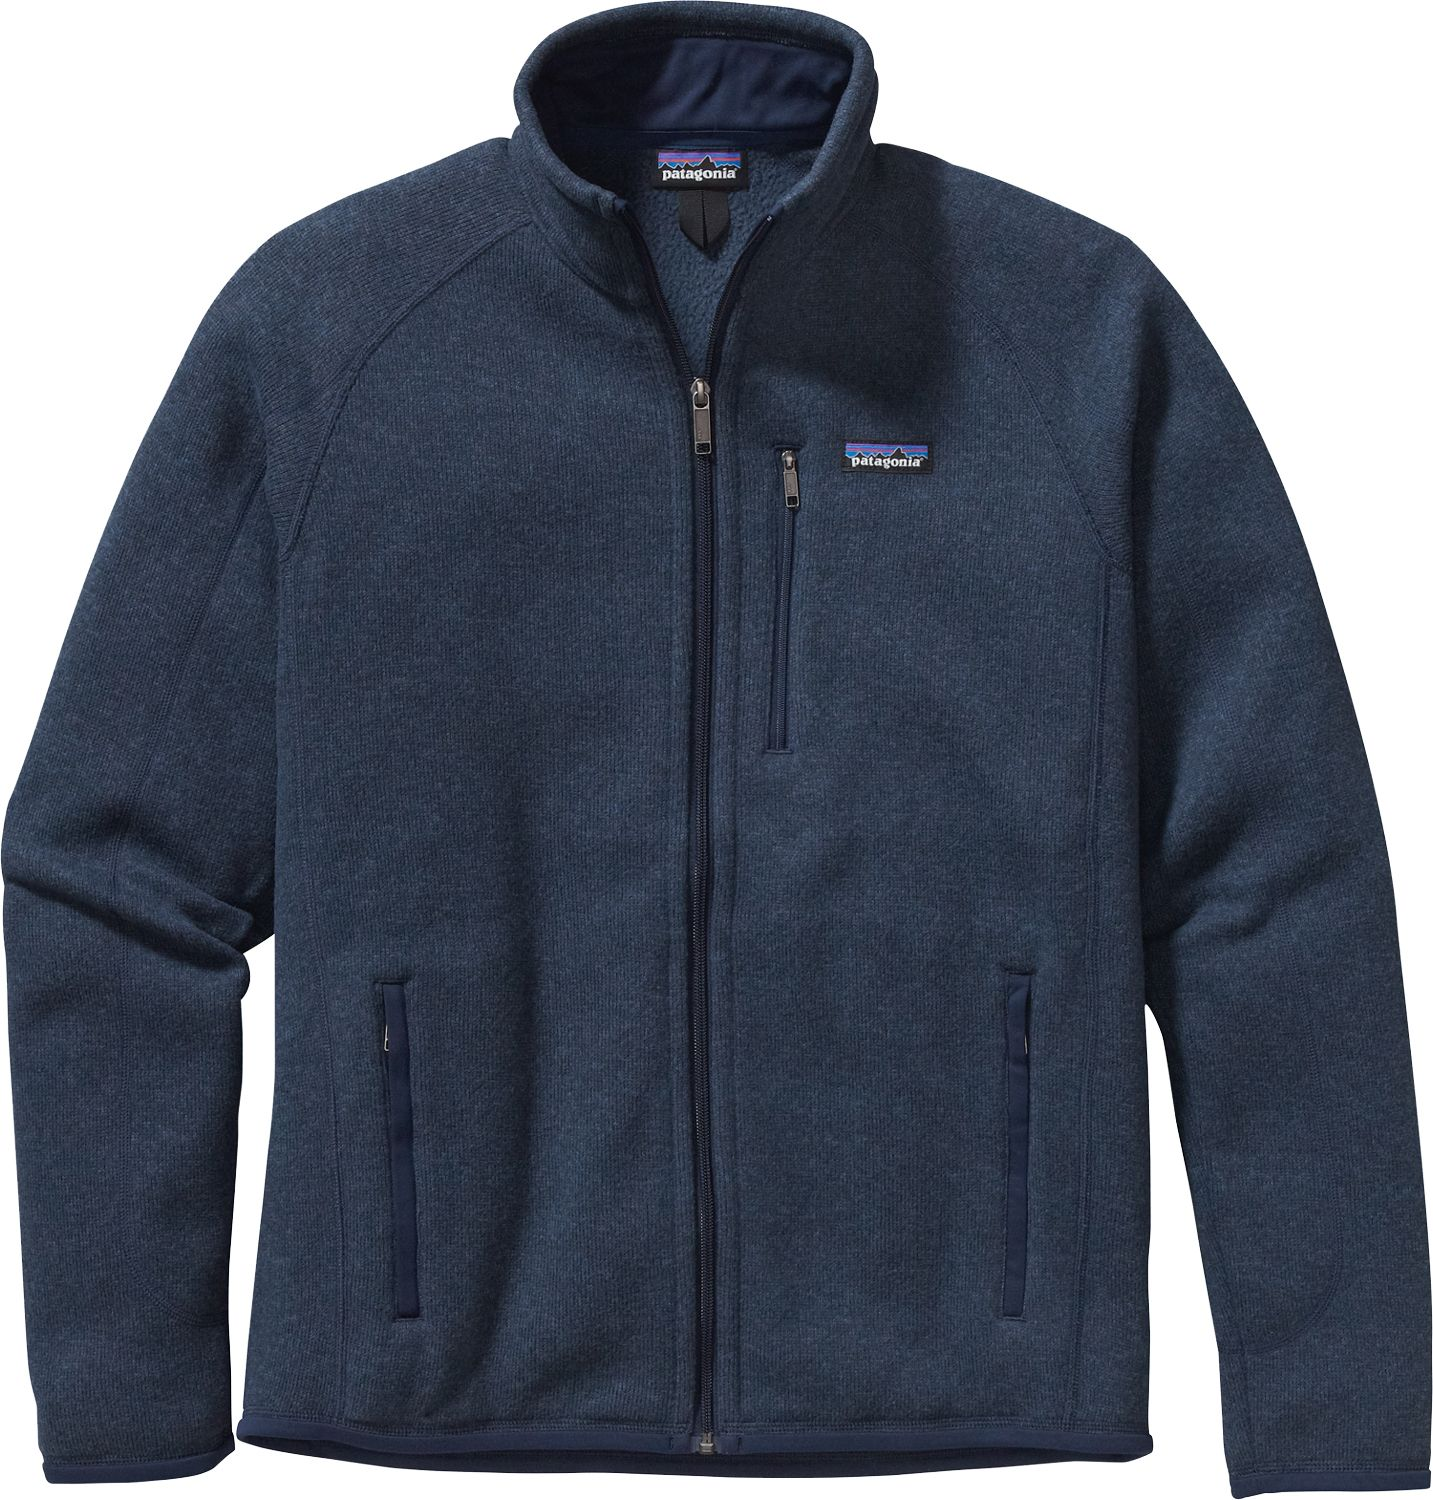 Patagonia Men's Better Sweater Fleece Jacket | DICK'S Sporting Goods